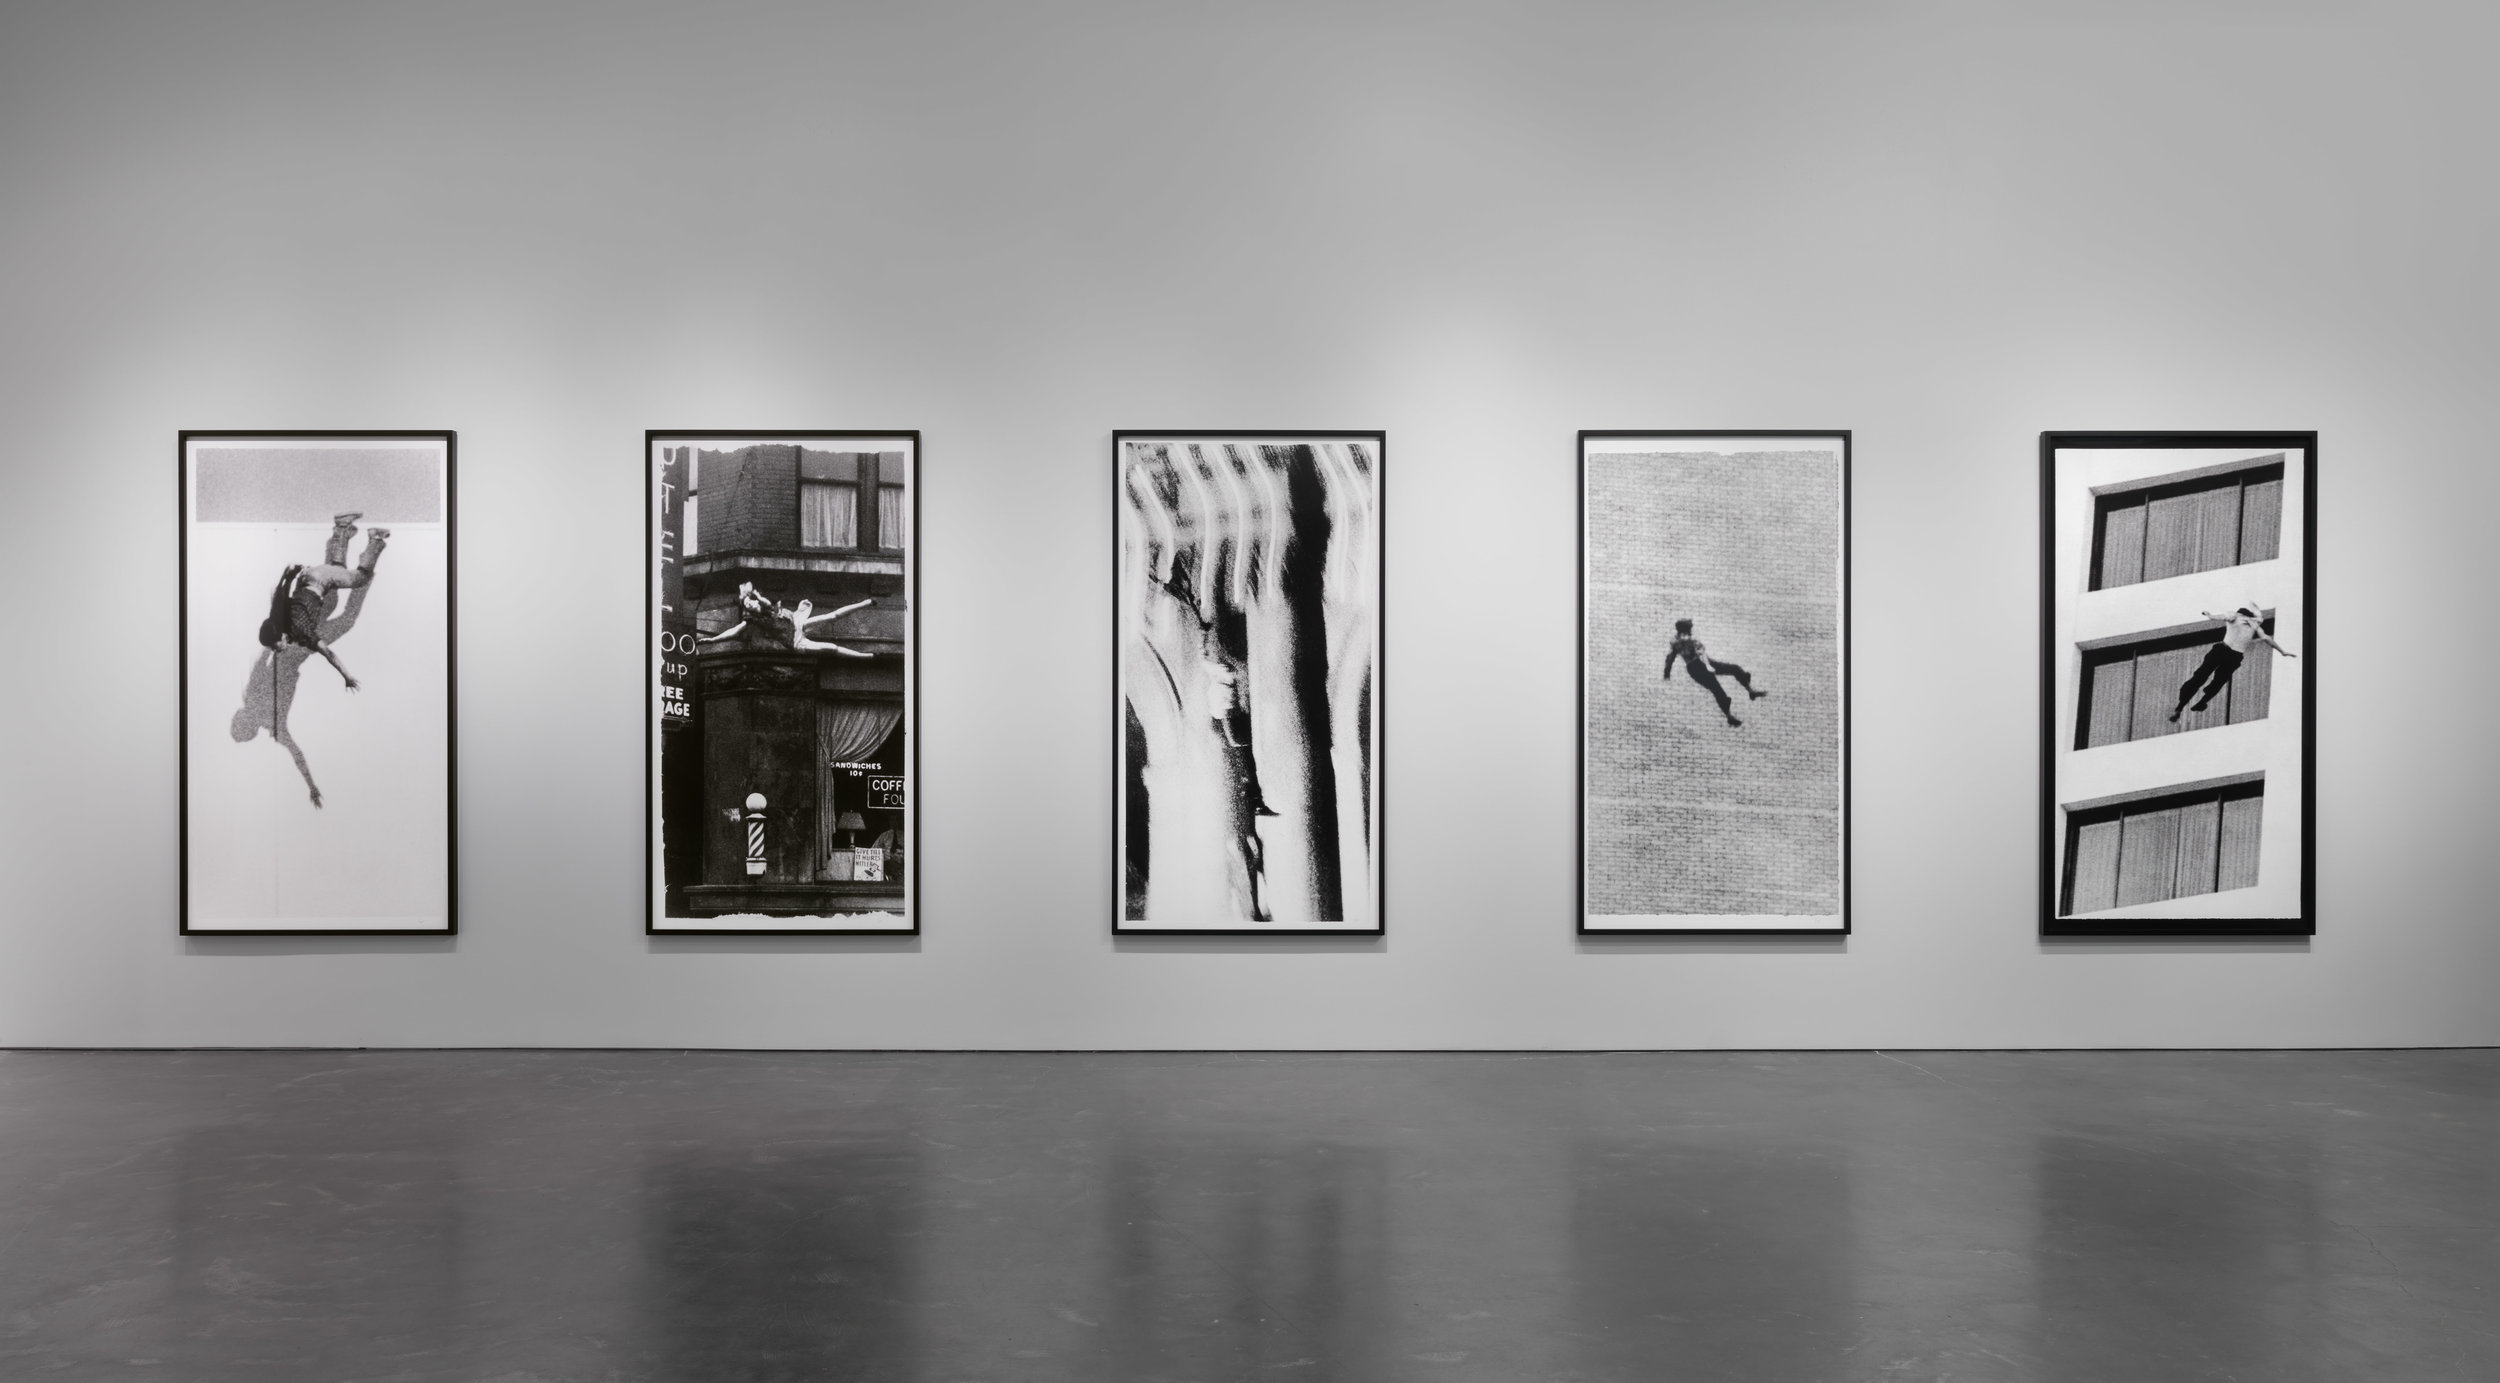 Installation view, courtesy New Museum